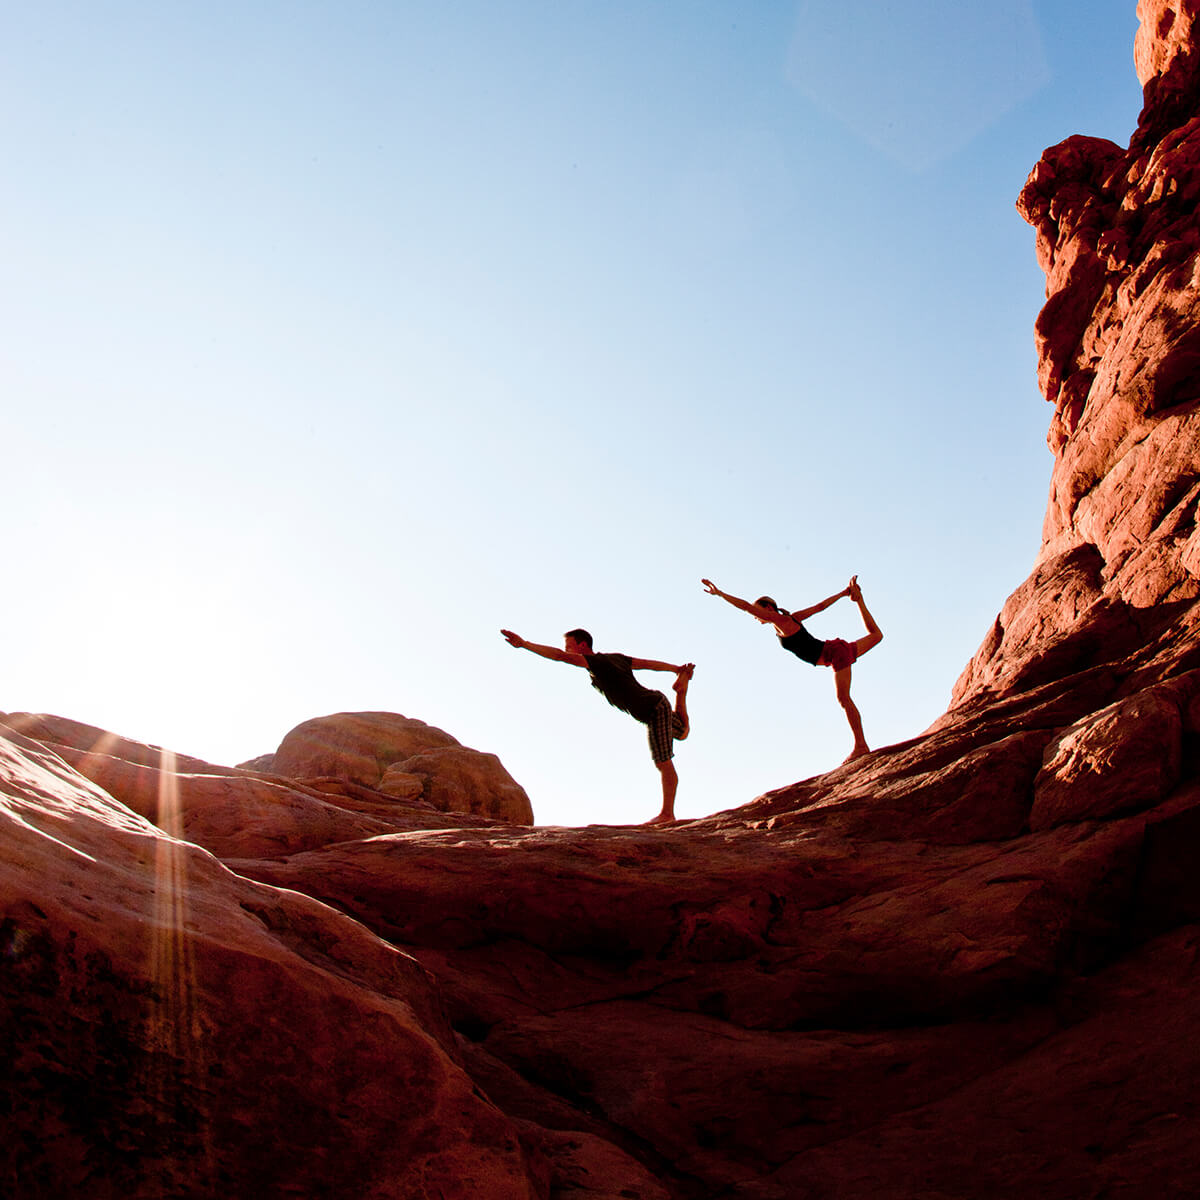 Explore New Possibilities with Our Wellness Experts